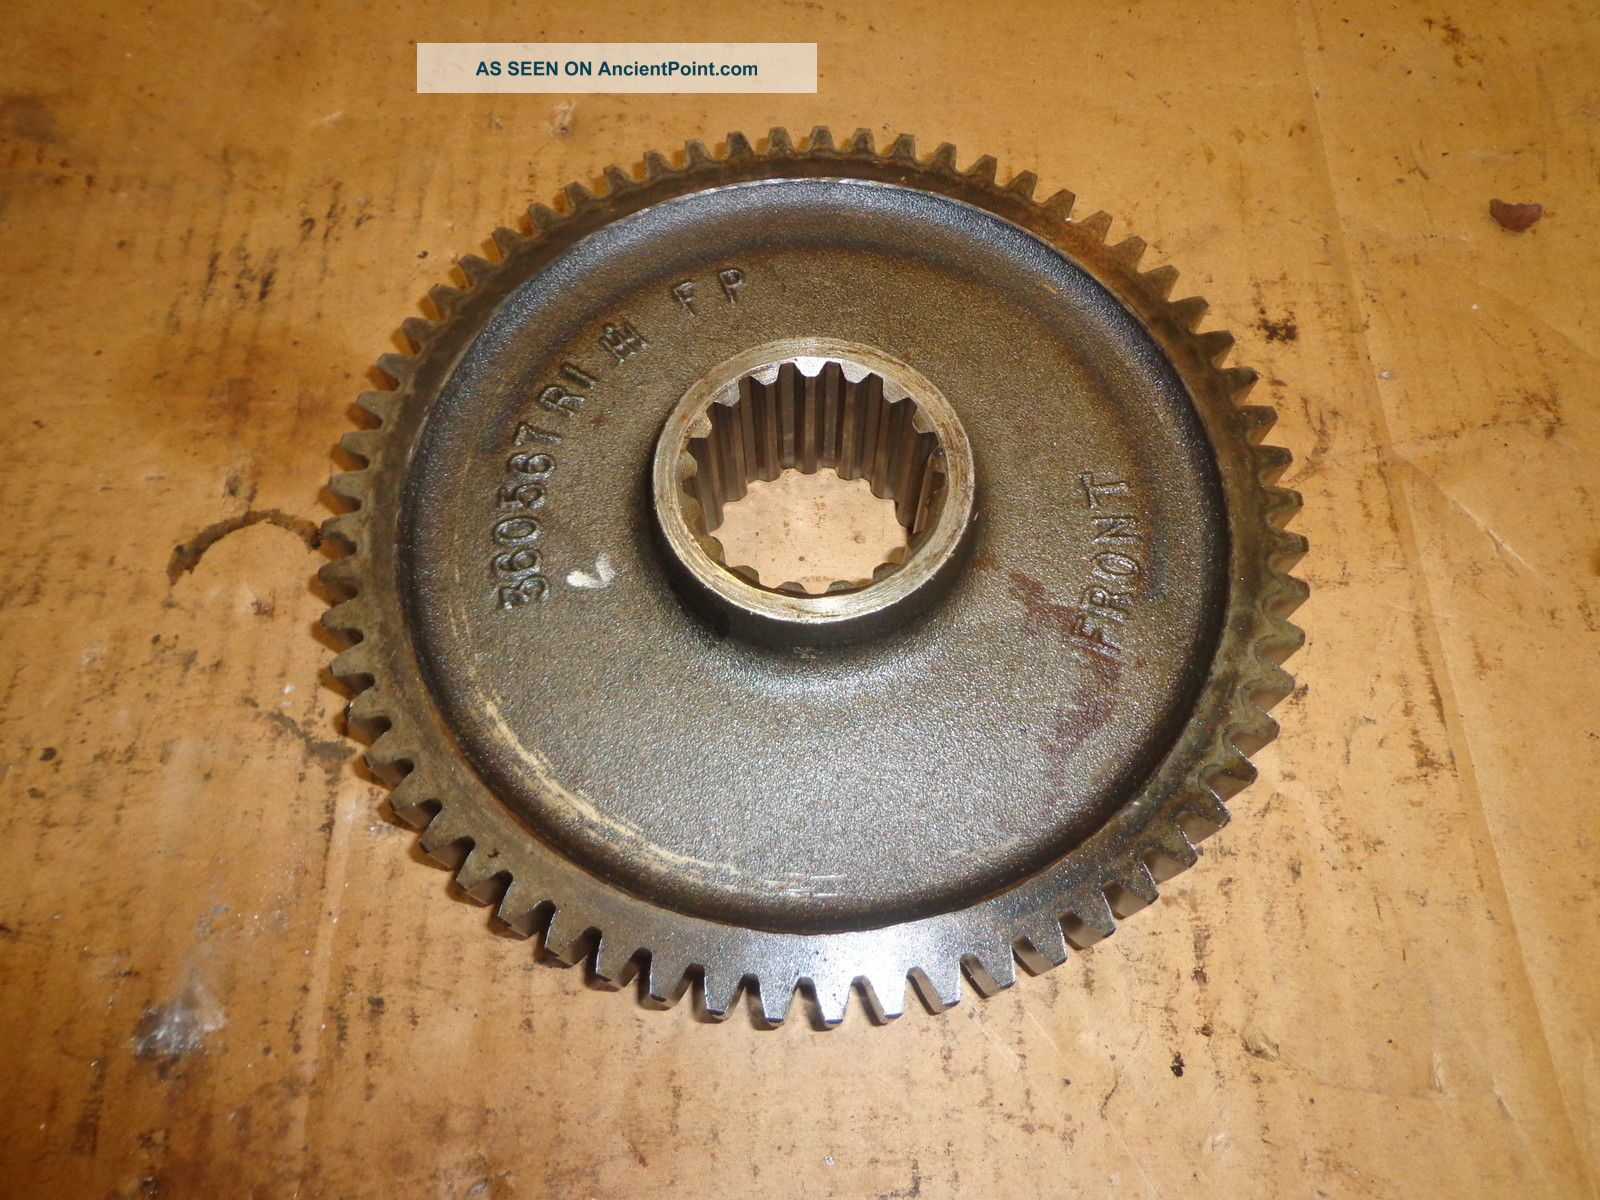 Vintage Large Steel Gear Steampunk Industrial Machine Age Antique Other photo